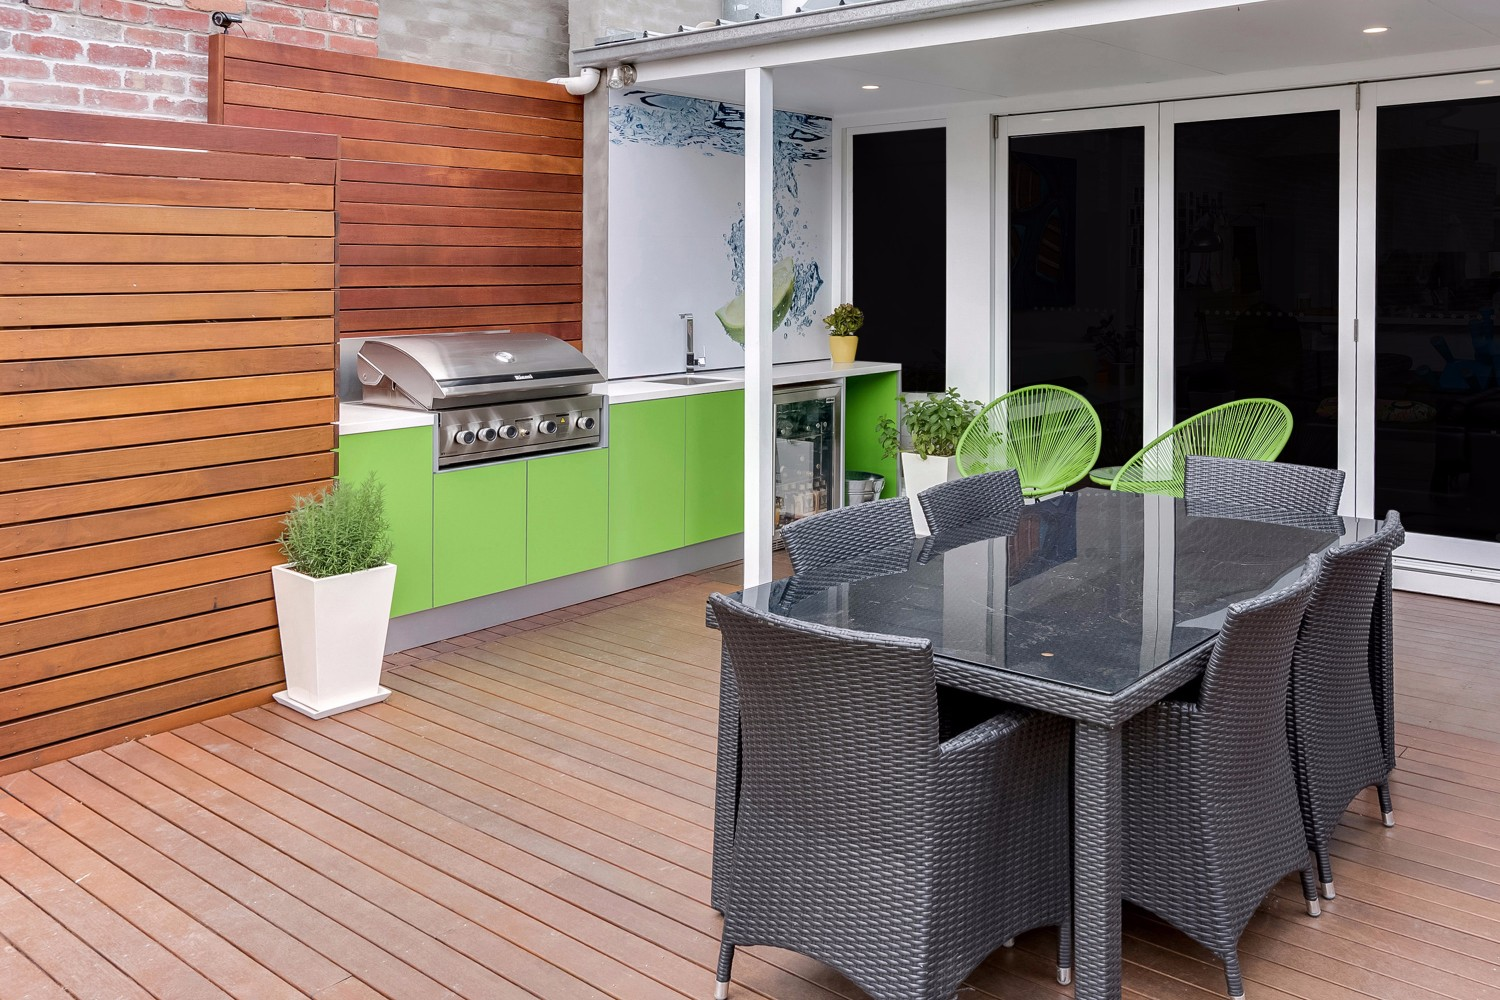 Green machine: a colourful and creative outdoor kitchen